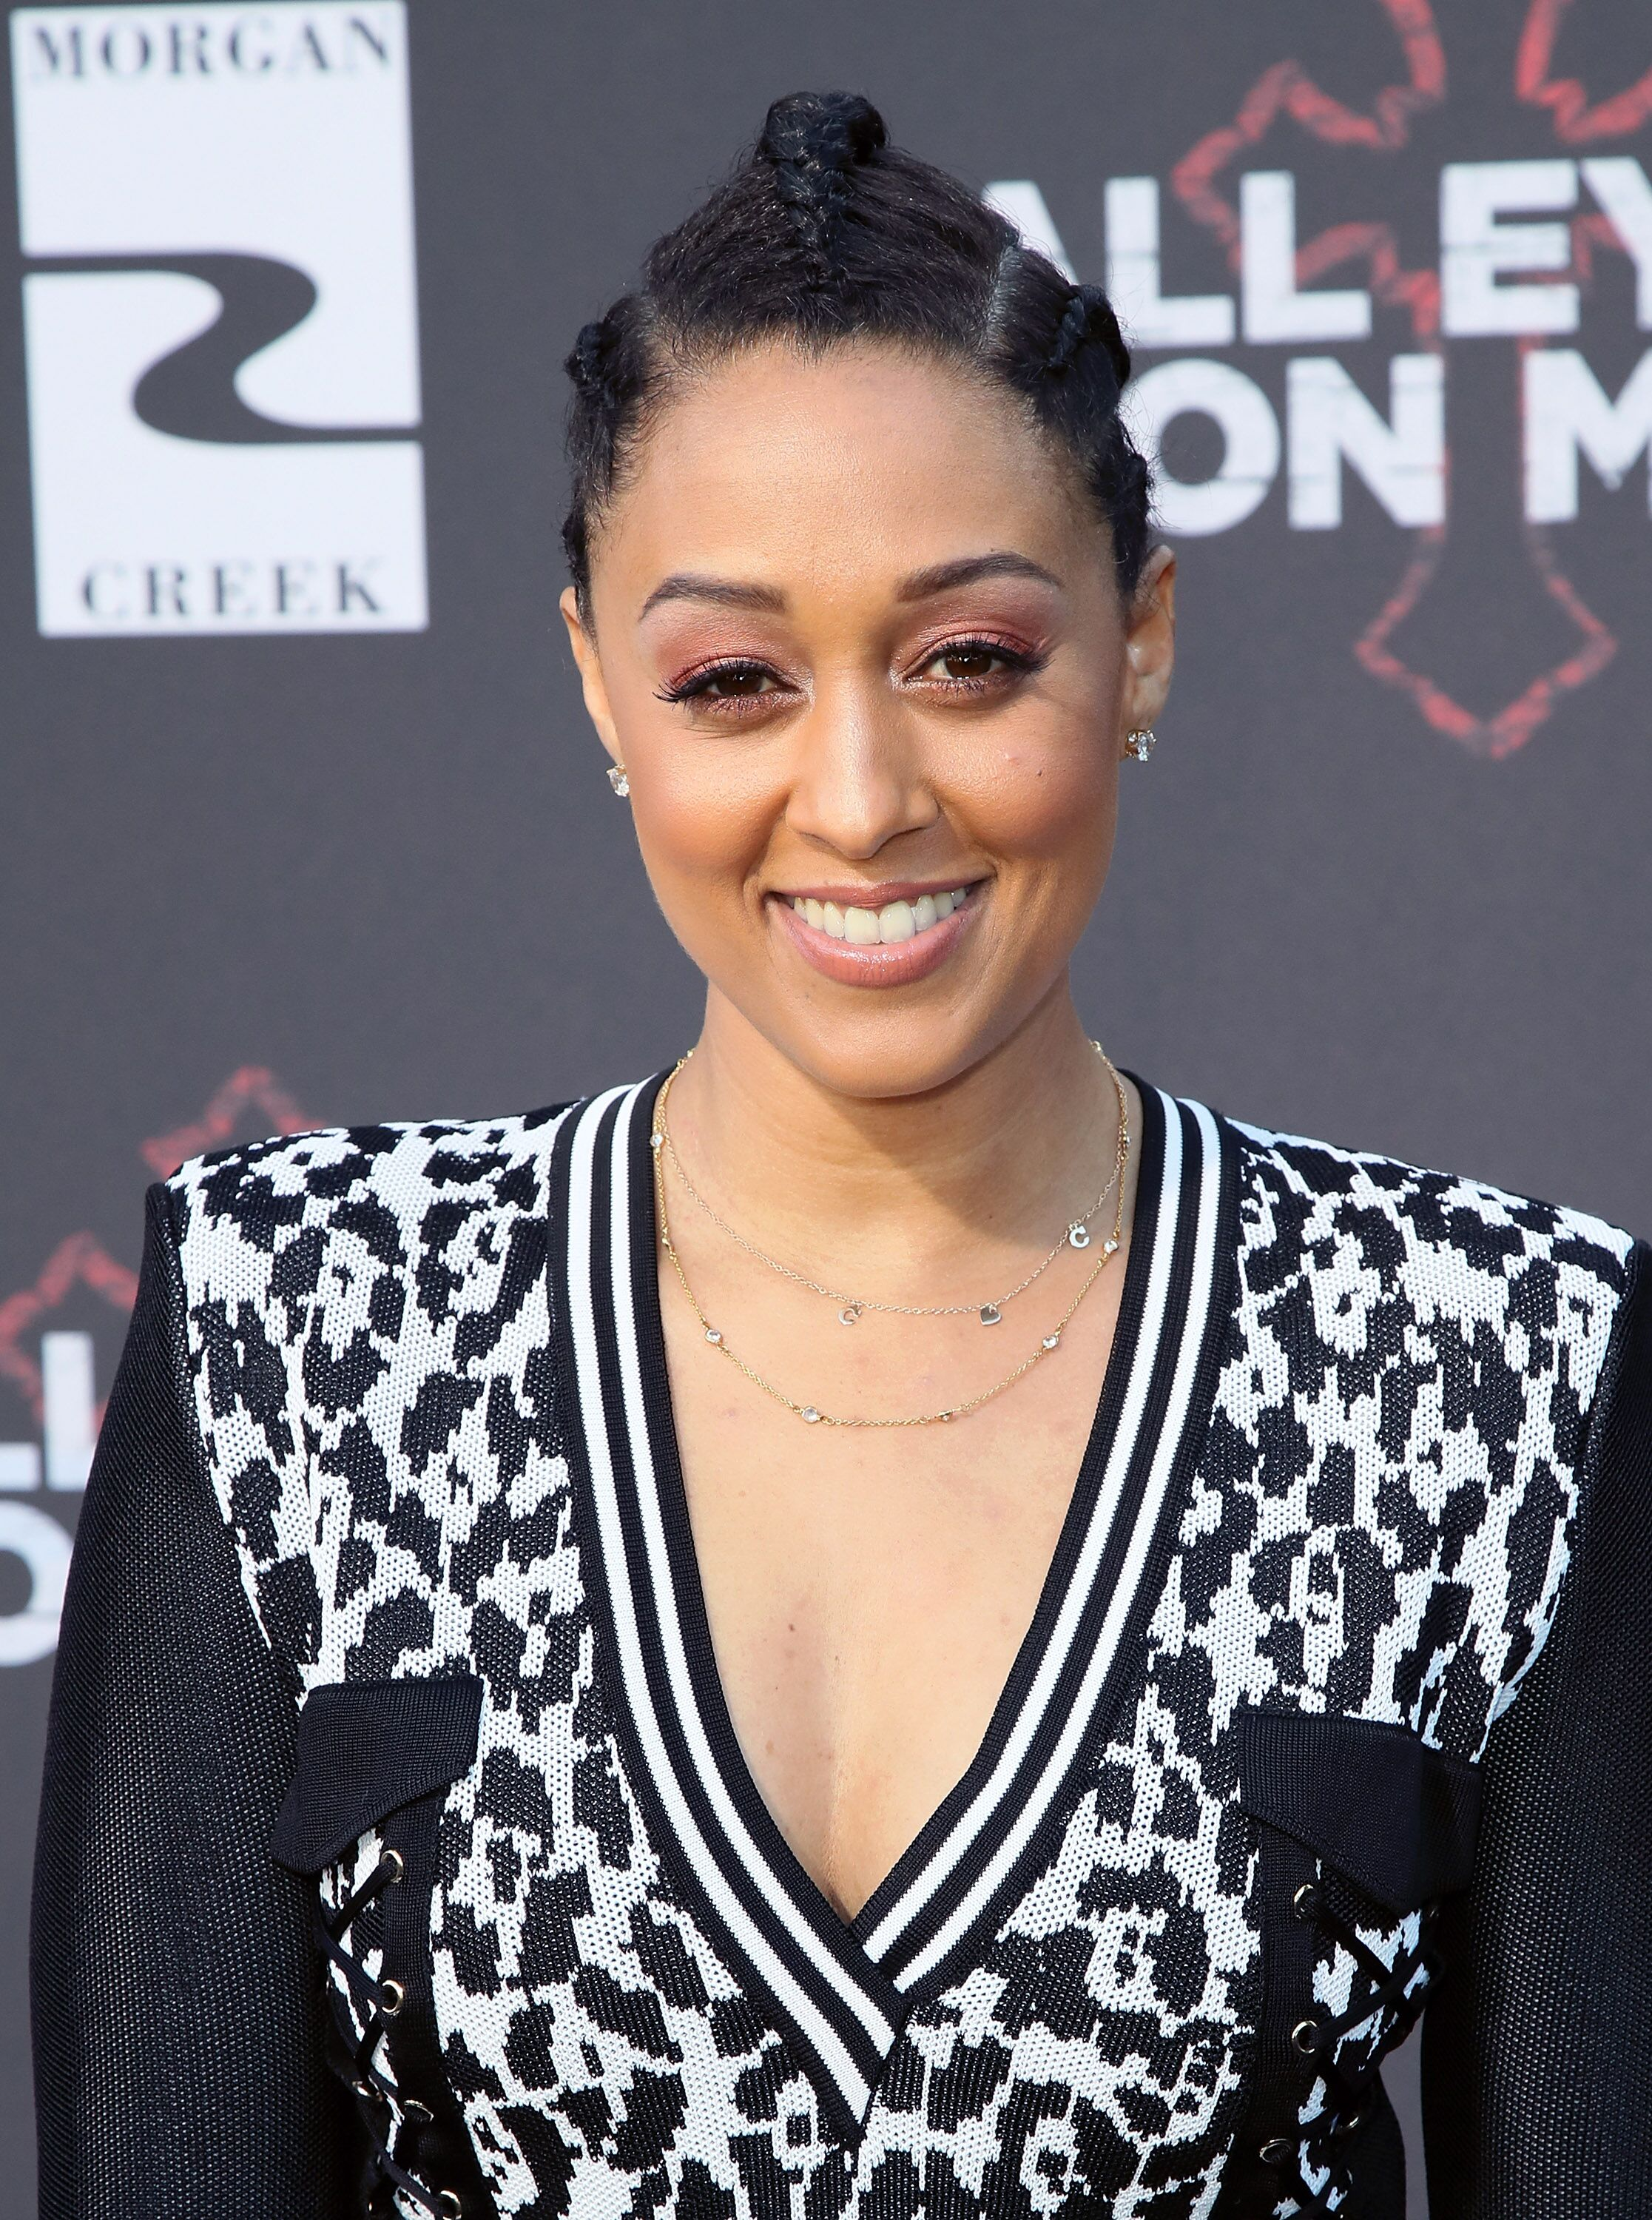 """The Game"" actress Tia Mowry at the premiere of ""All Eyes On Me""/ Source: Getty Images"